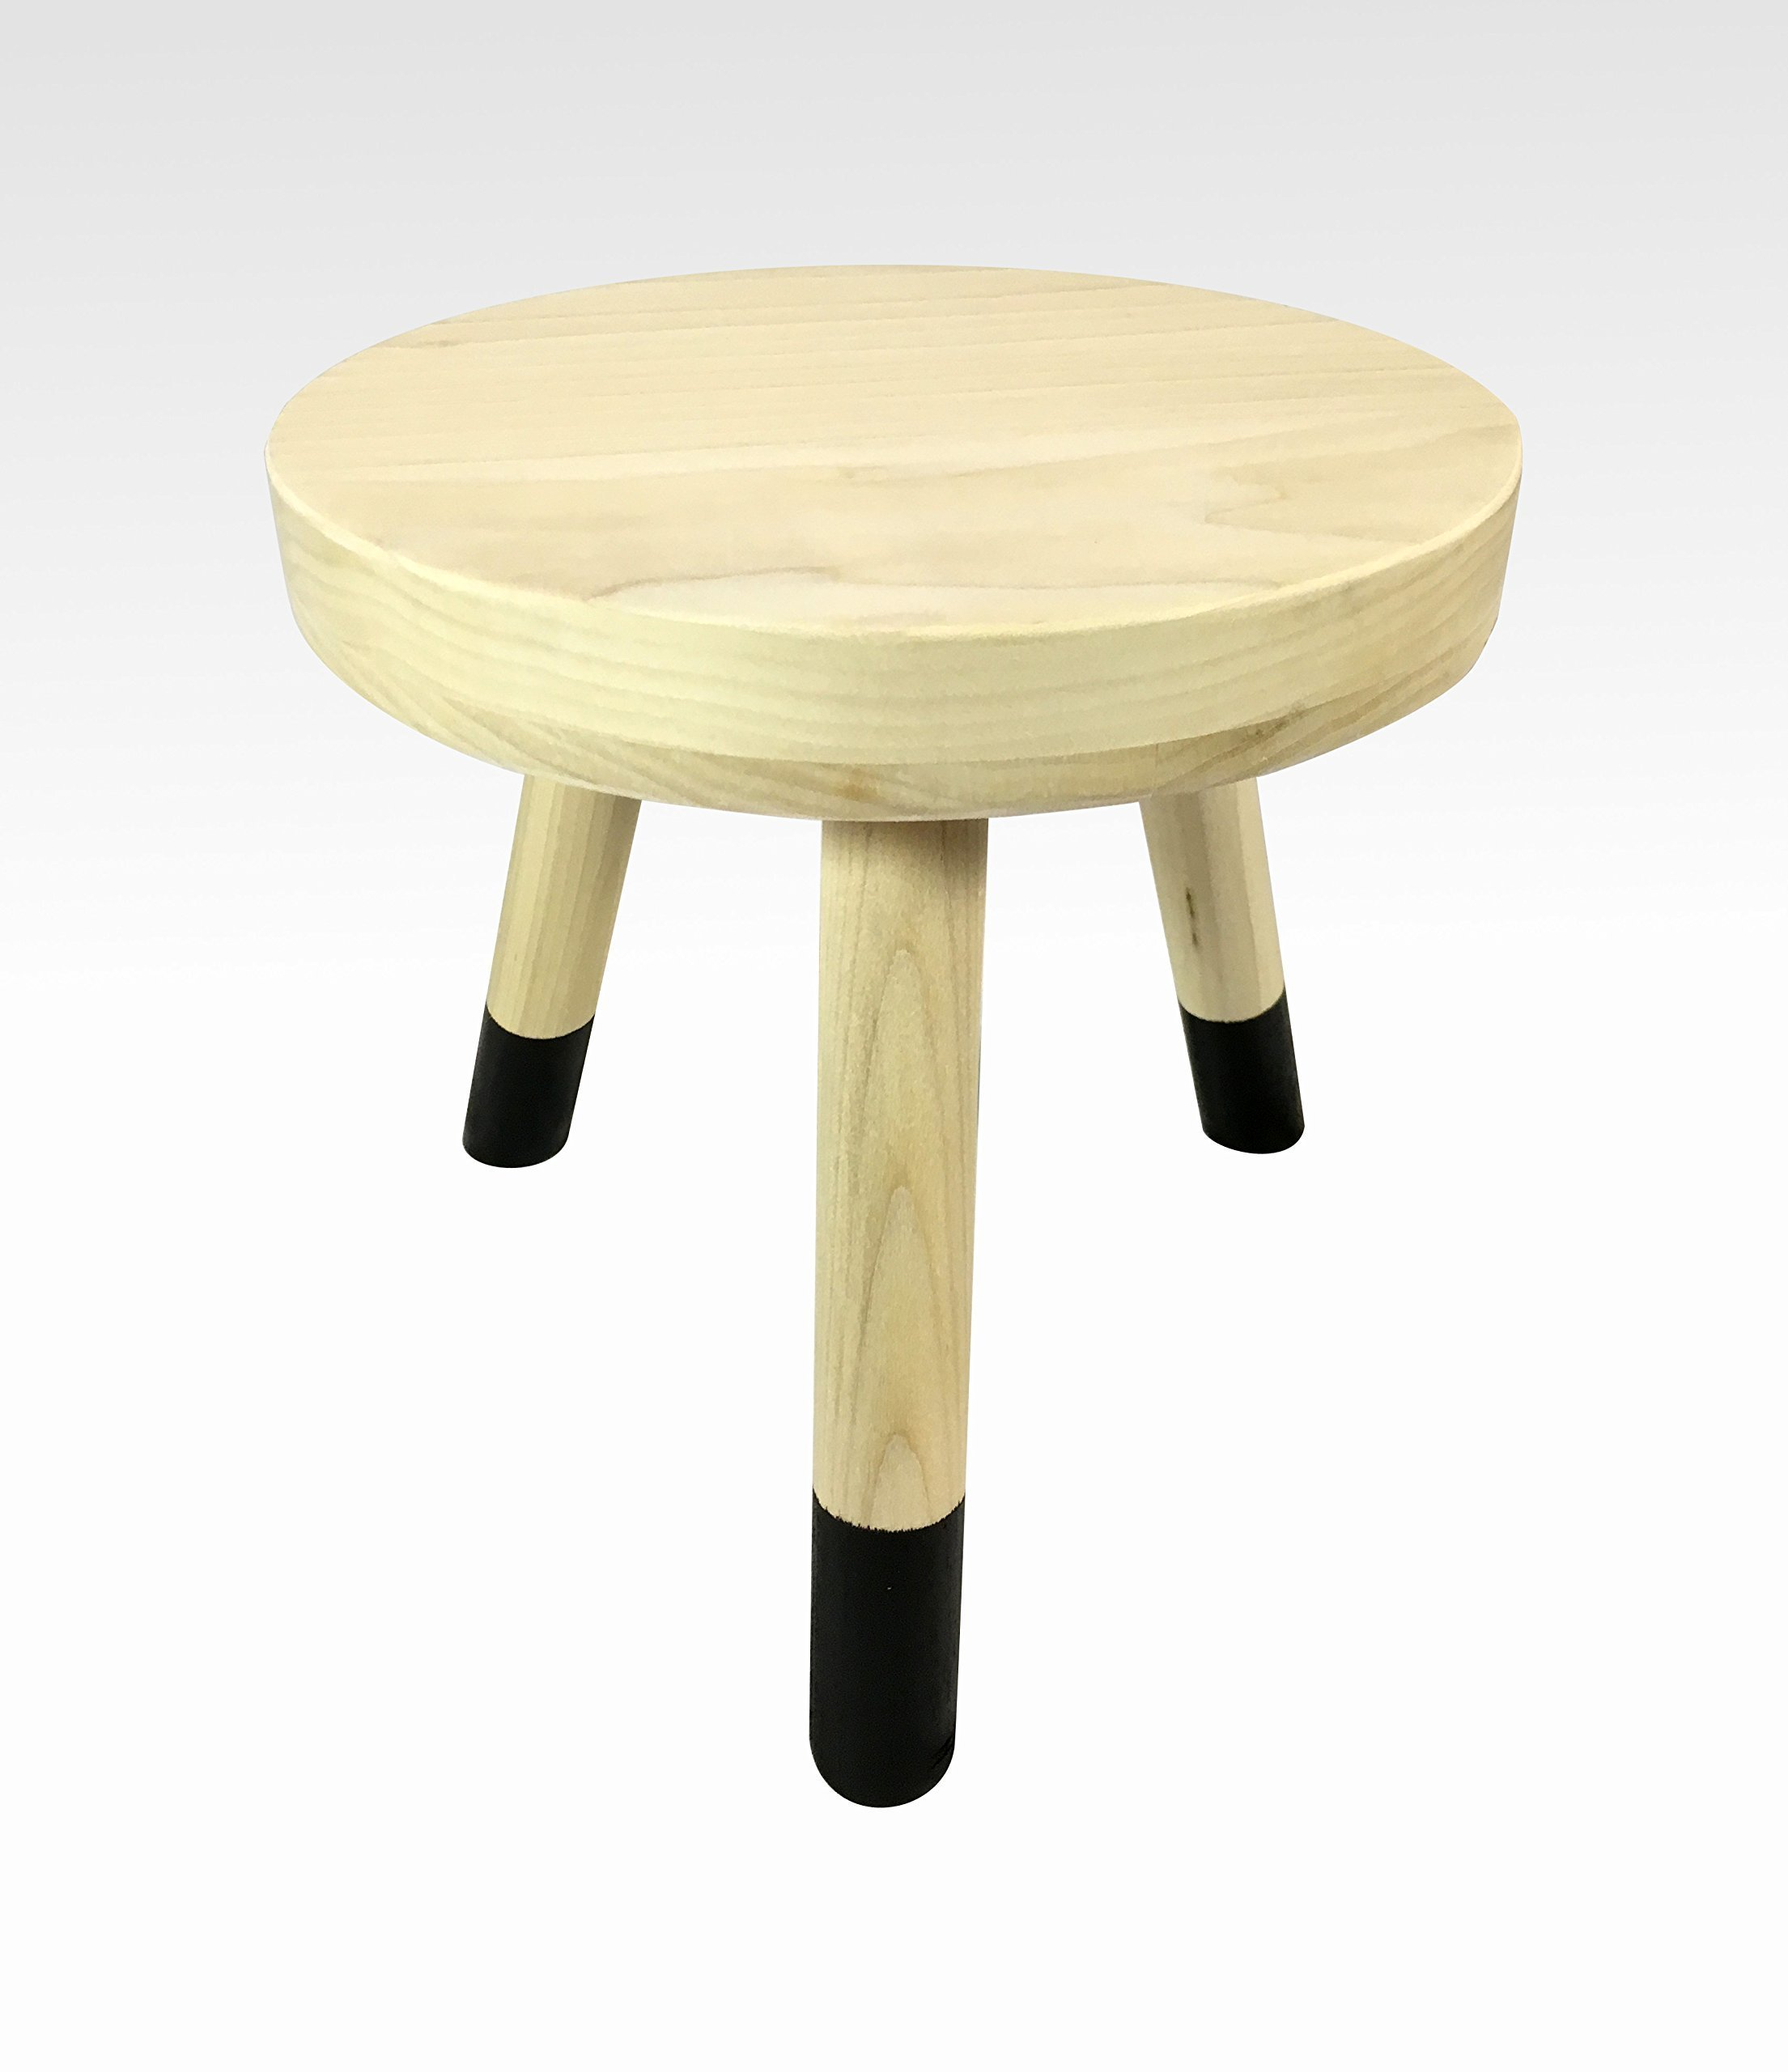 Small Wood Three Legged Stool, Modern Plant Stand in Black and White by Candlewood Furniture, Wooden, Tea Table, Kids Chair, Decorative